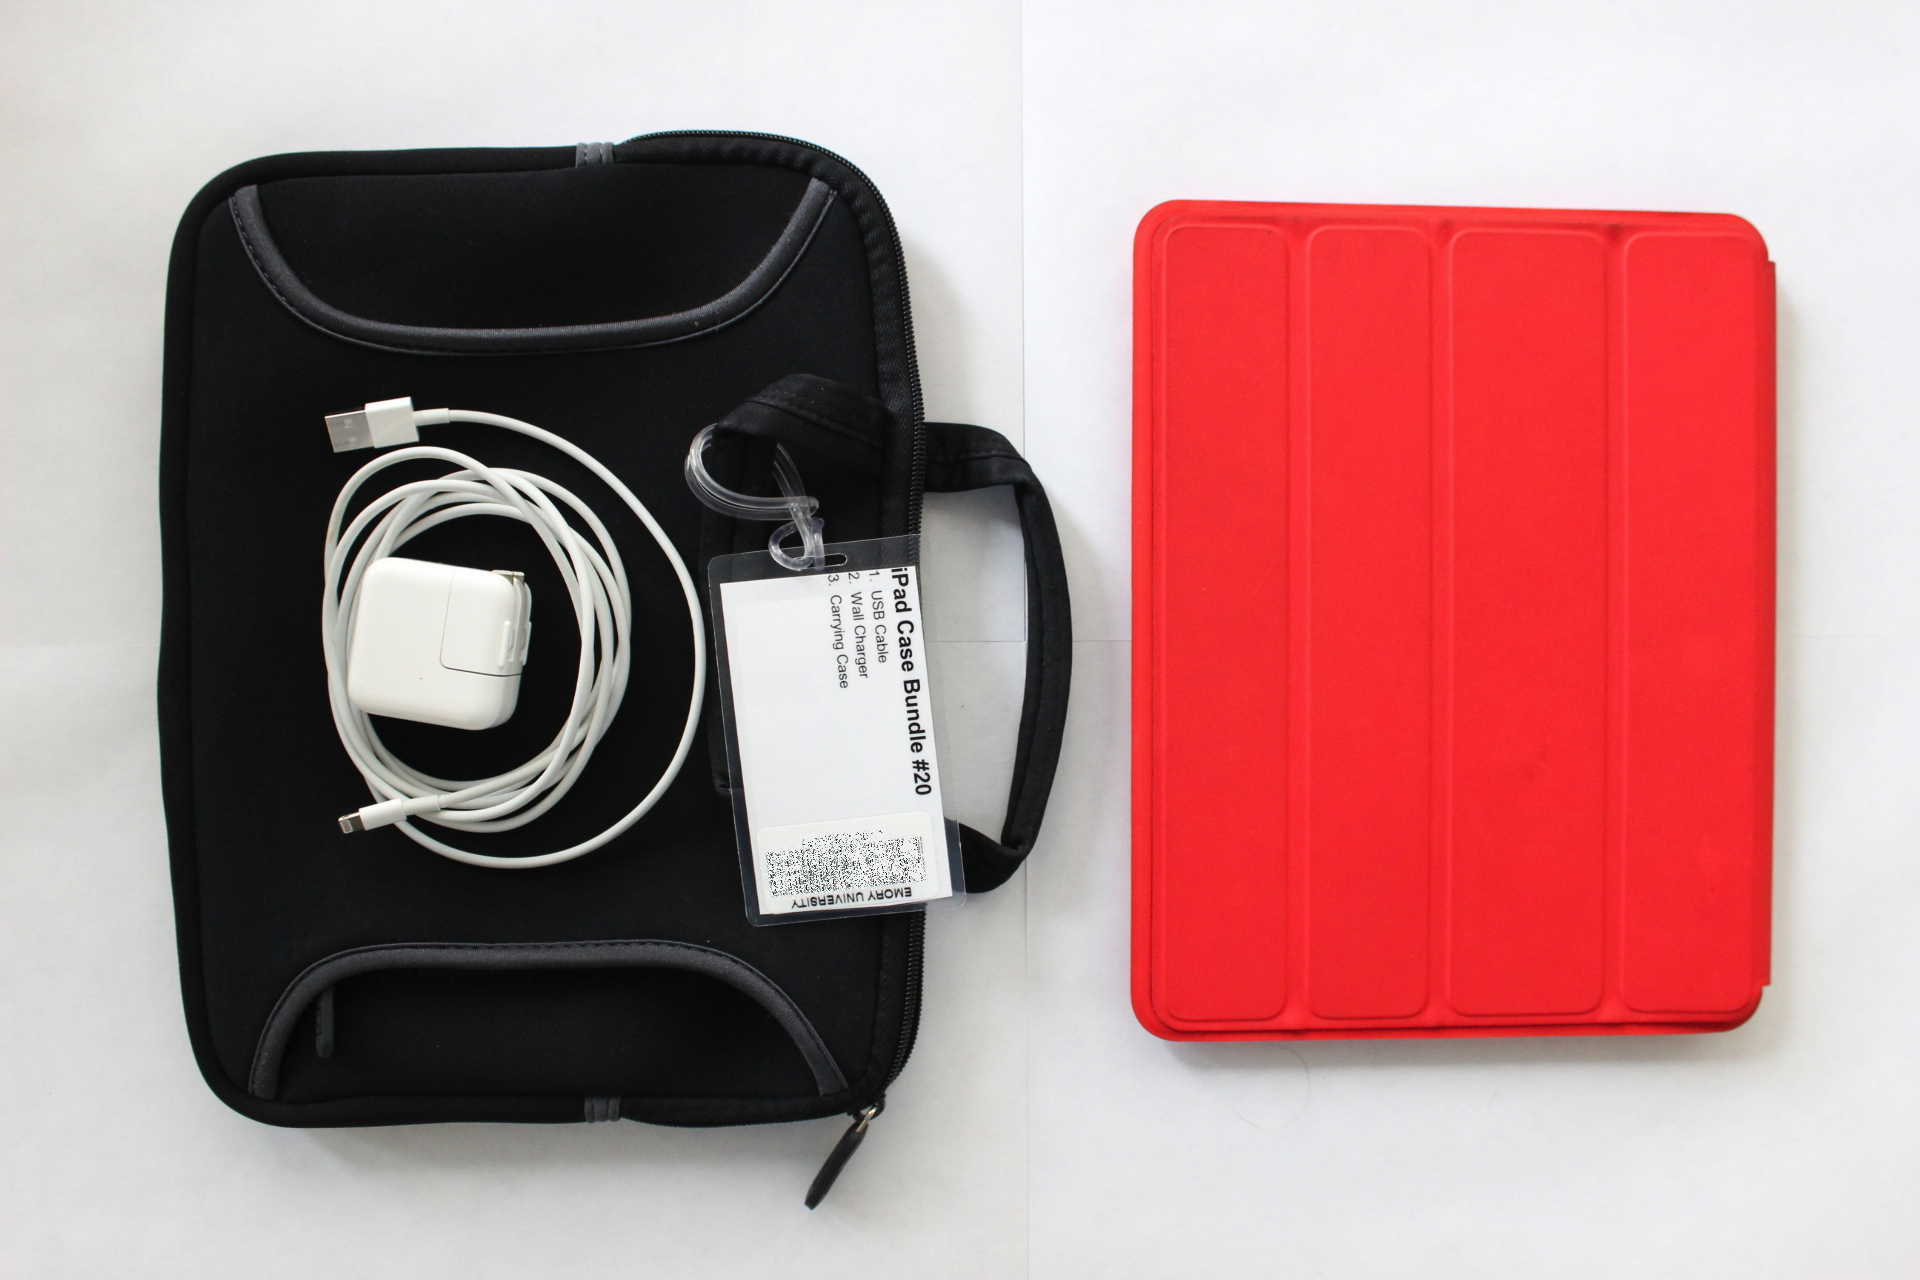 4th Generation iPad and accompanying Accessory Bundle